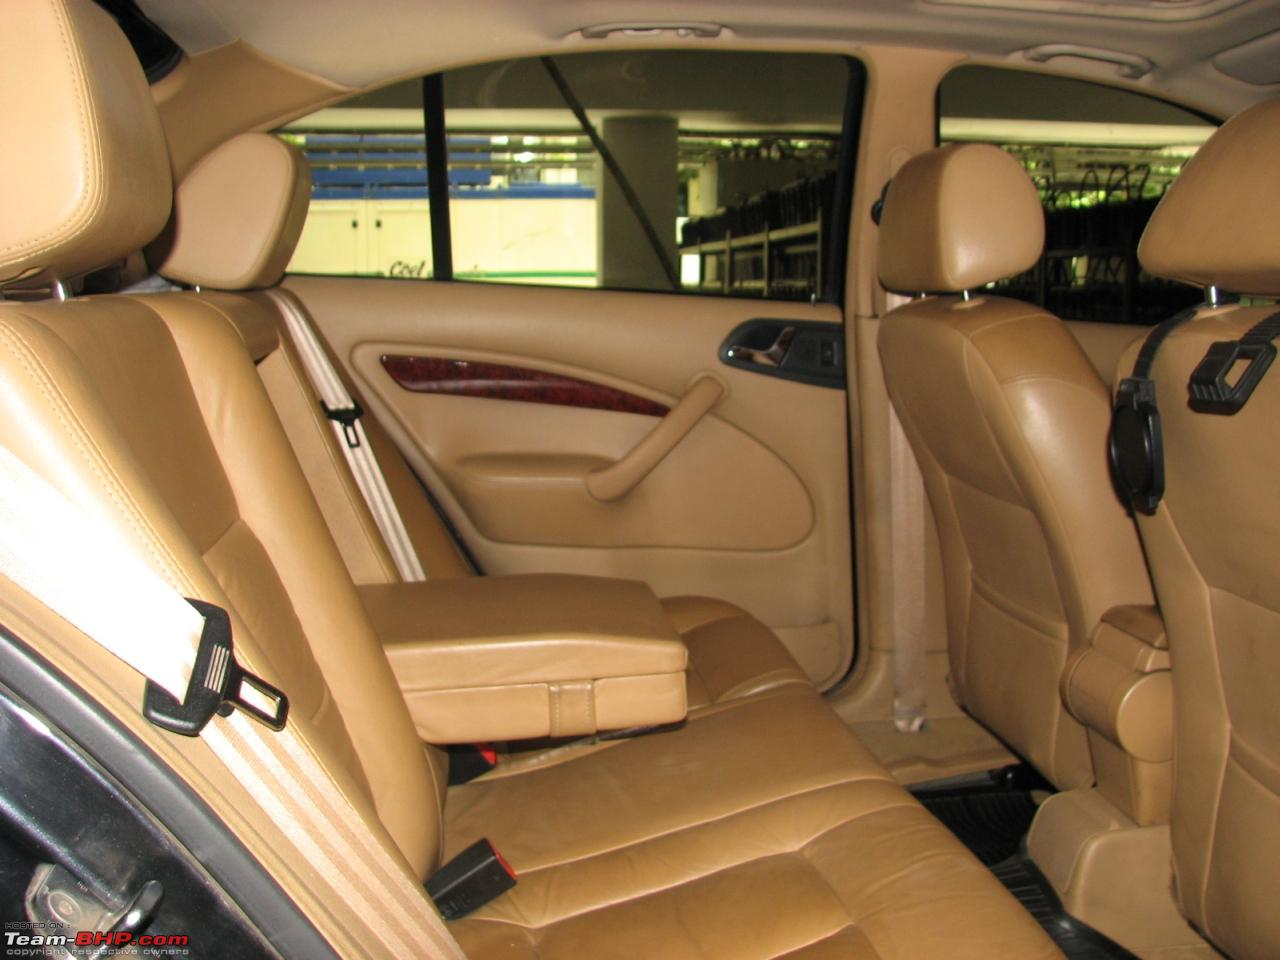 What To Do With Old Car Seats >> Skoda Octavia 1.9 TDI L&K Review : 90,000 kms done - Team-BHP